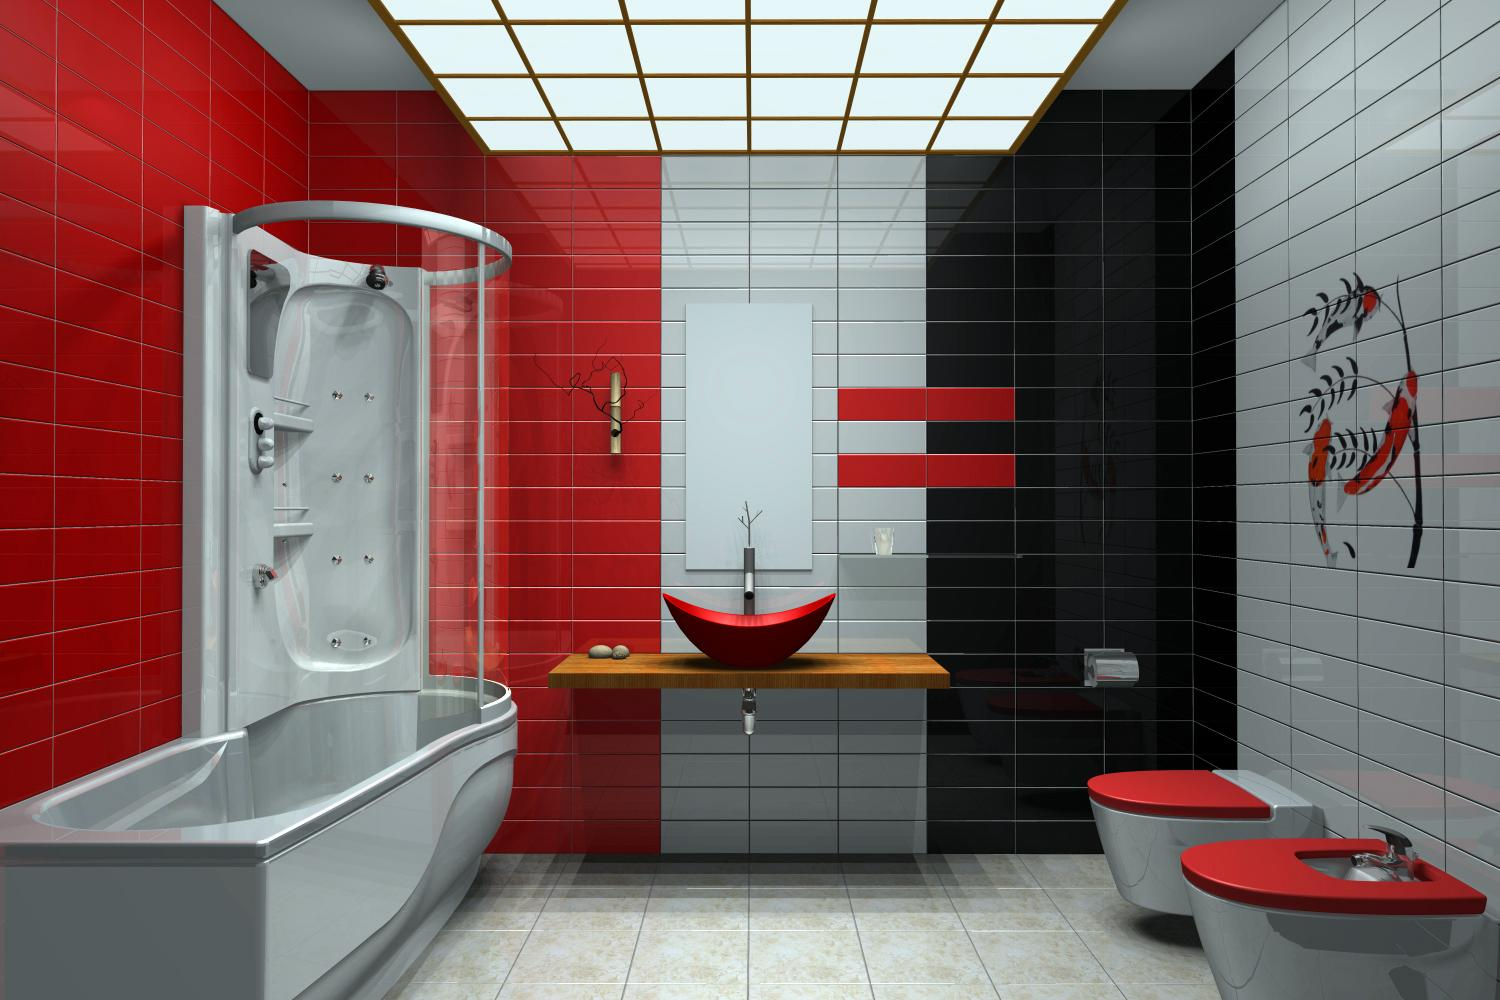 Tapis Chambre Bebe Chouette : Modern Bathrooms with 3 colors tiled Light Gray , Black and Red a nice